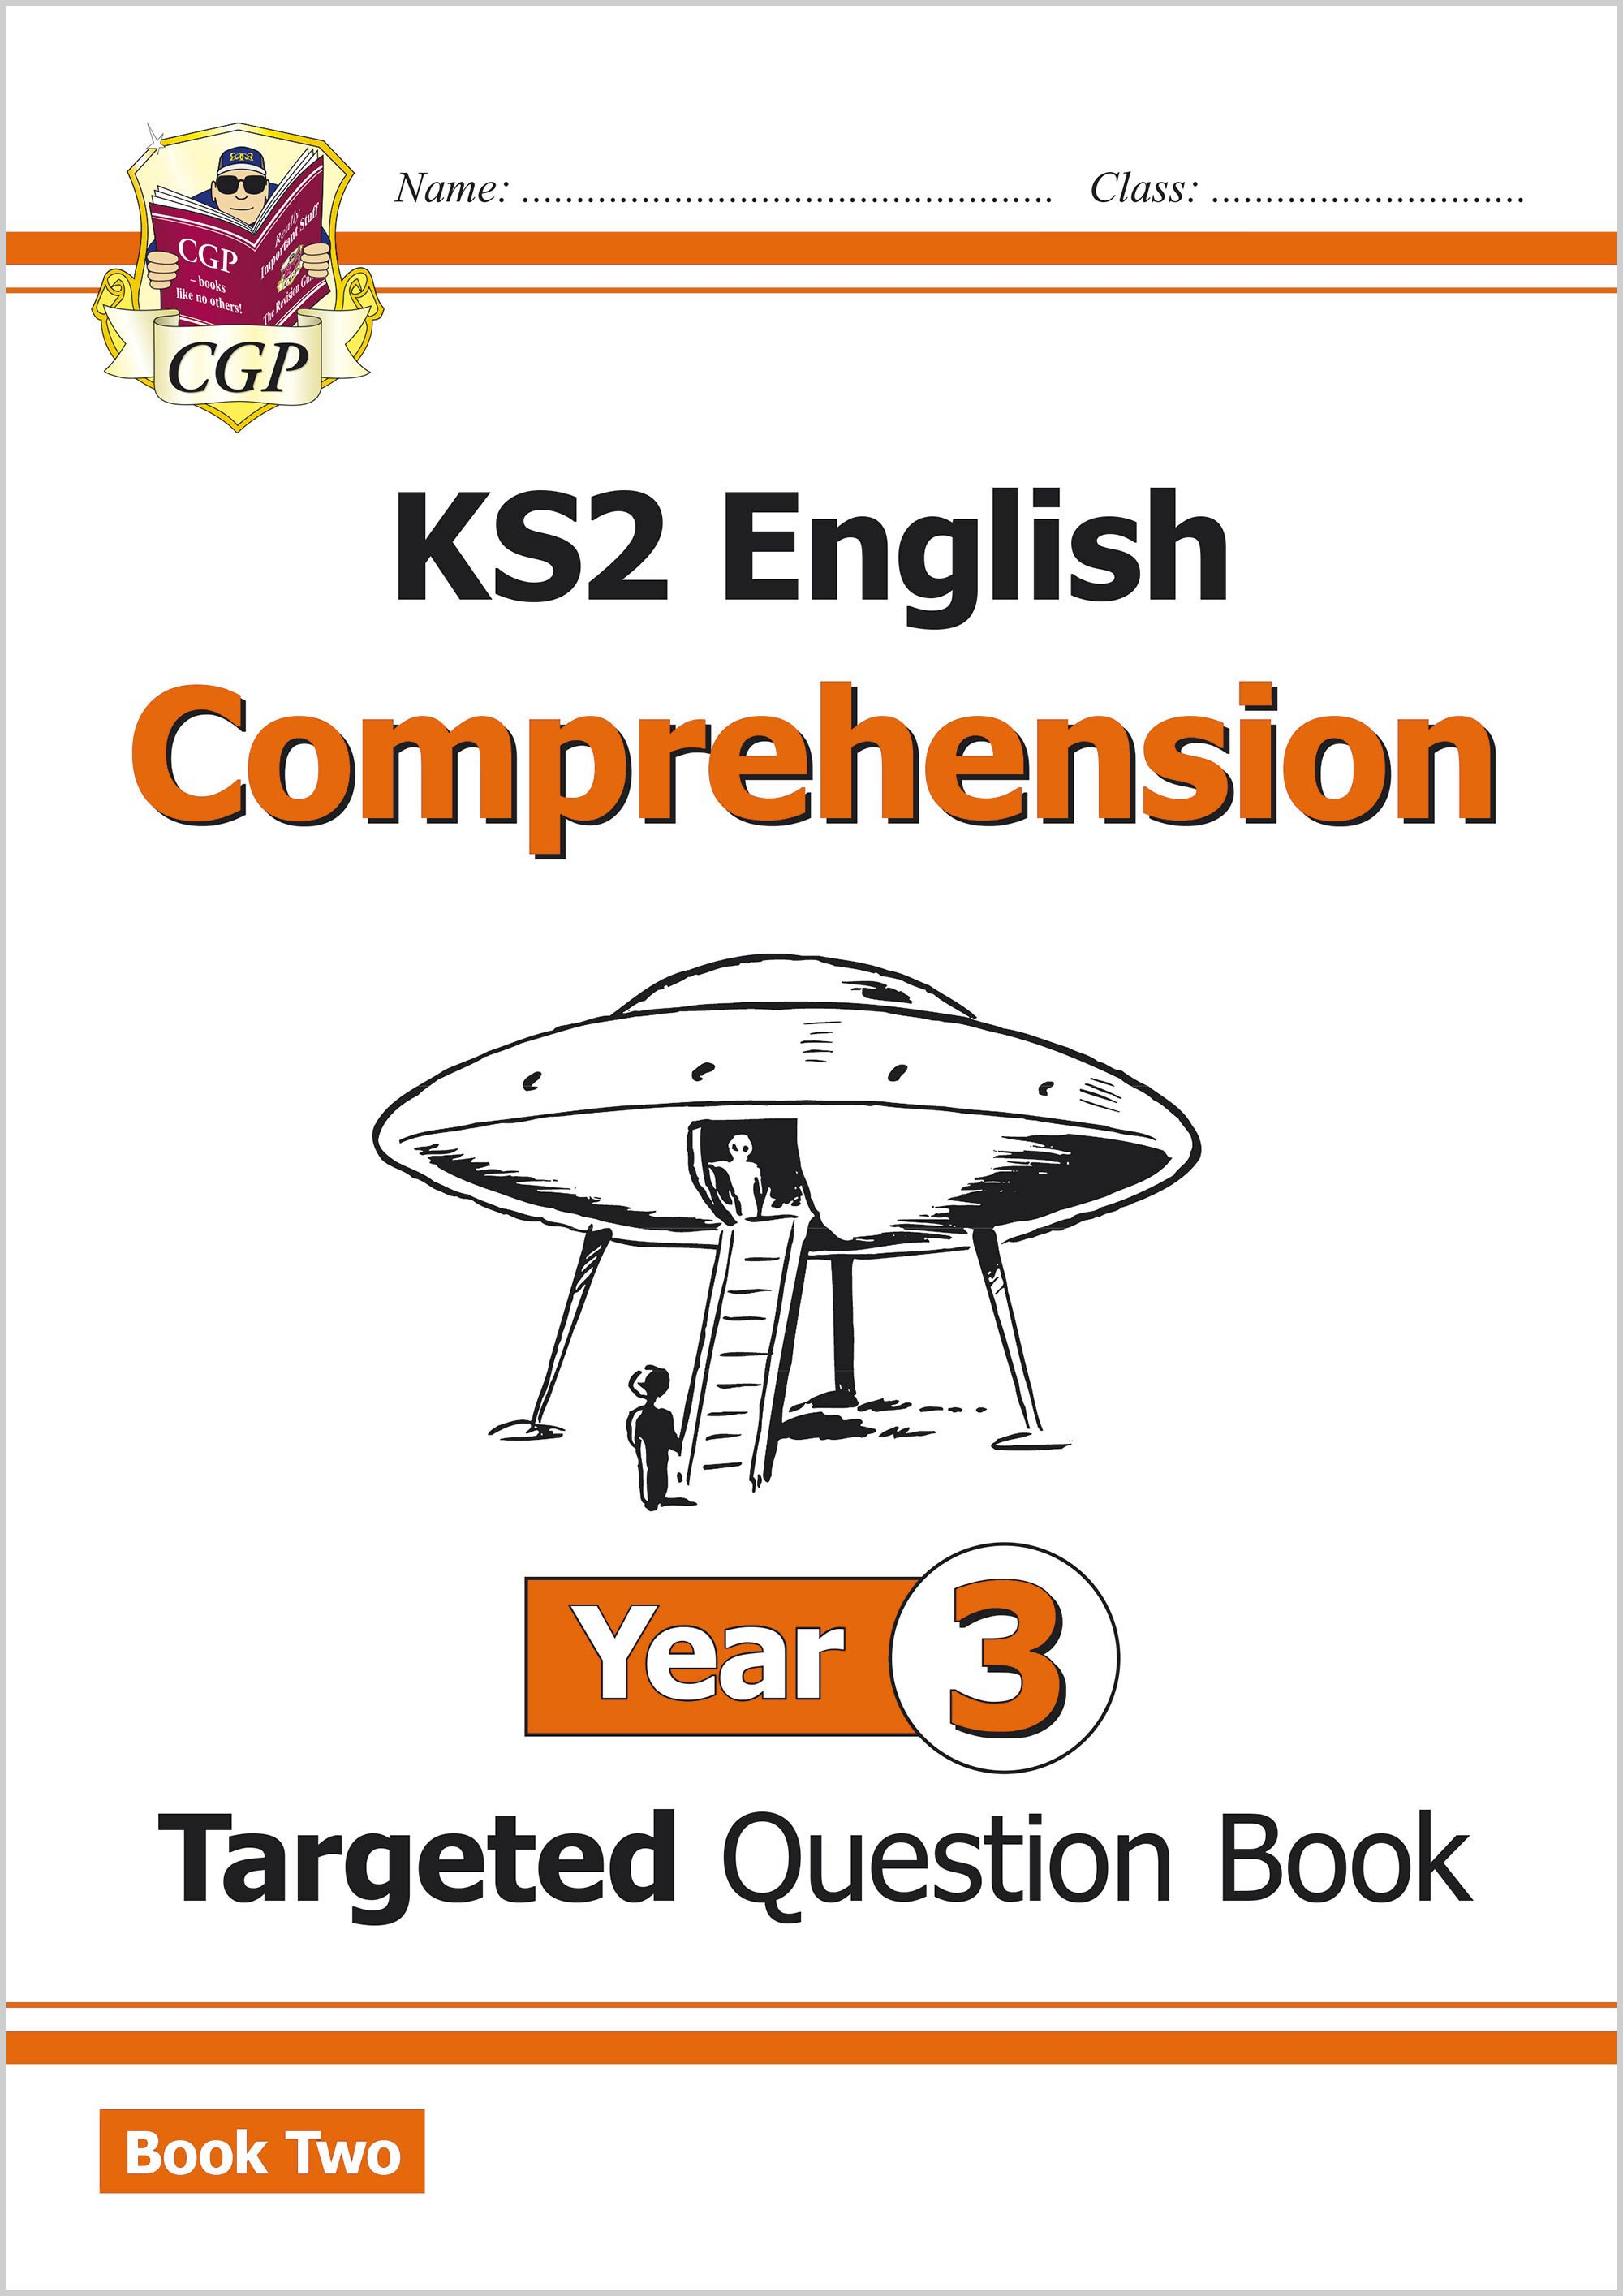 E3CW221 - KS2 English Targeted Question Book: Year 3 Comprehension - Book 2